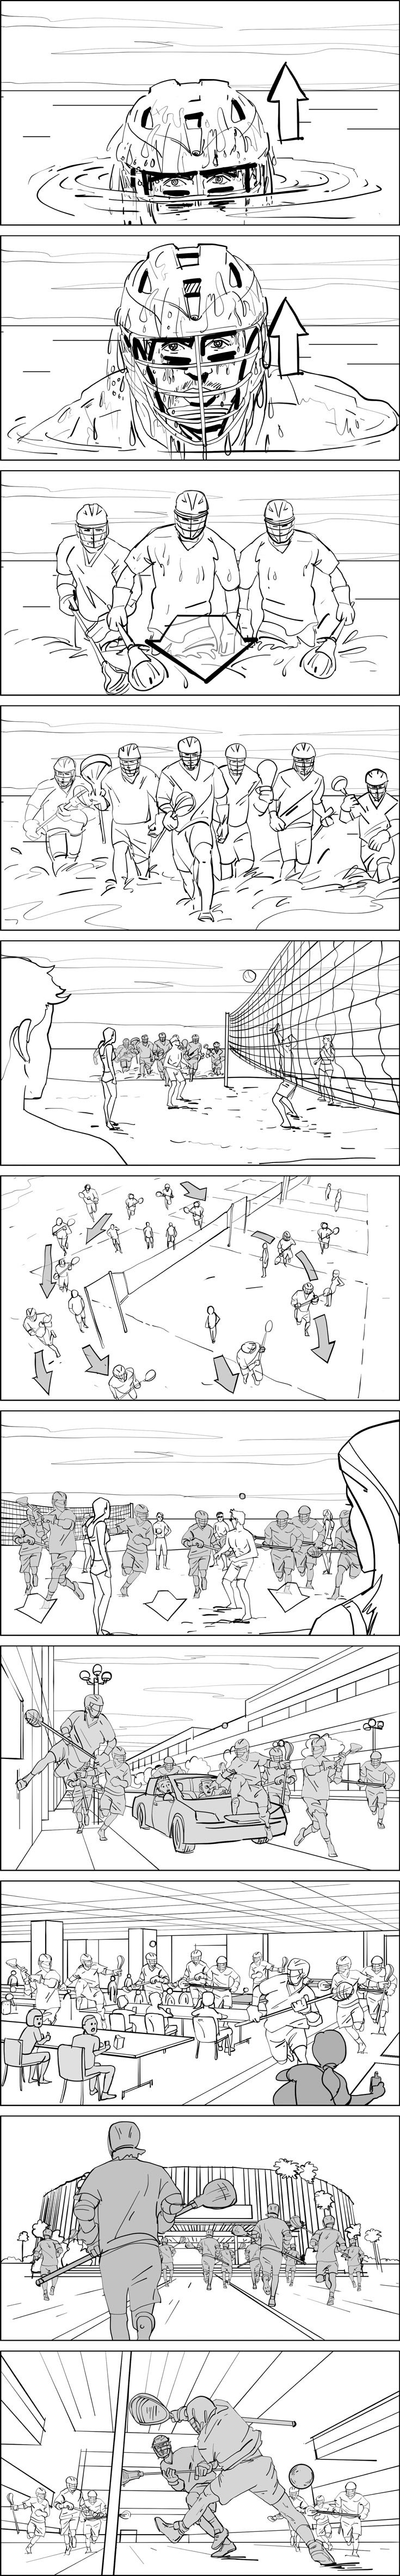 Lacrosse Action Storyboards  Storyboards By Storyboard Artist